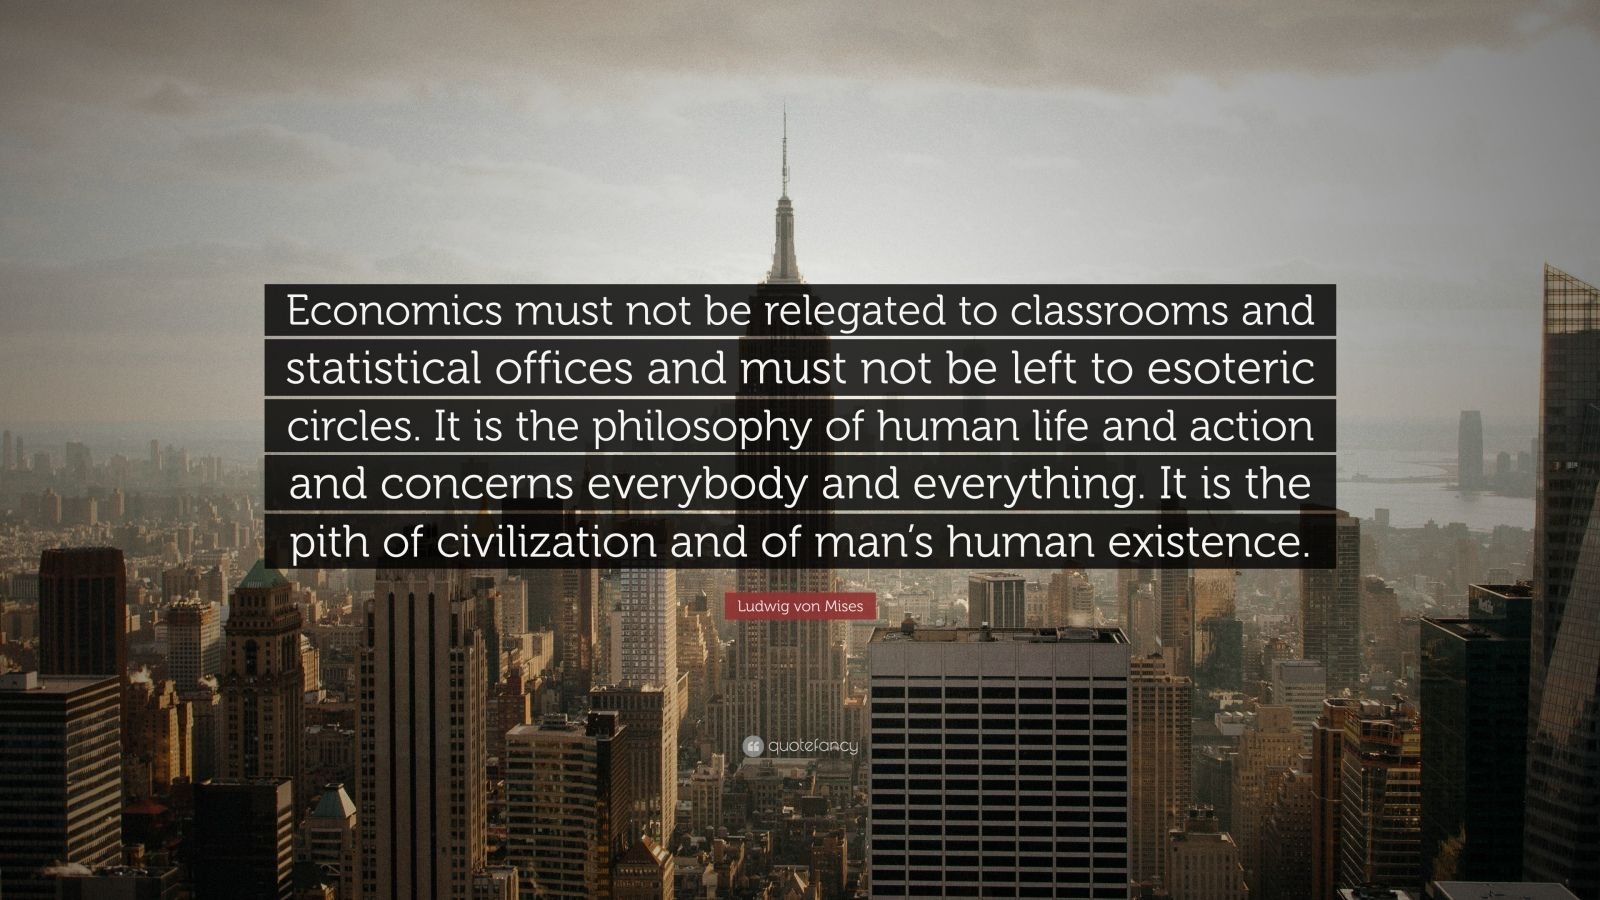 """Ludwig von Mises Quote: """"Economics must not be relegated to classrooms and statistical offices and must not be left to esoteric circles. It is the philosophy of human life and action and concerns everybody and everything. It is the pith of civilization and of man's human existence."""""""